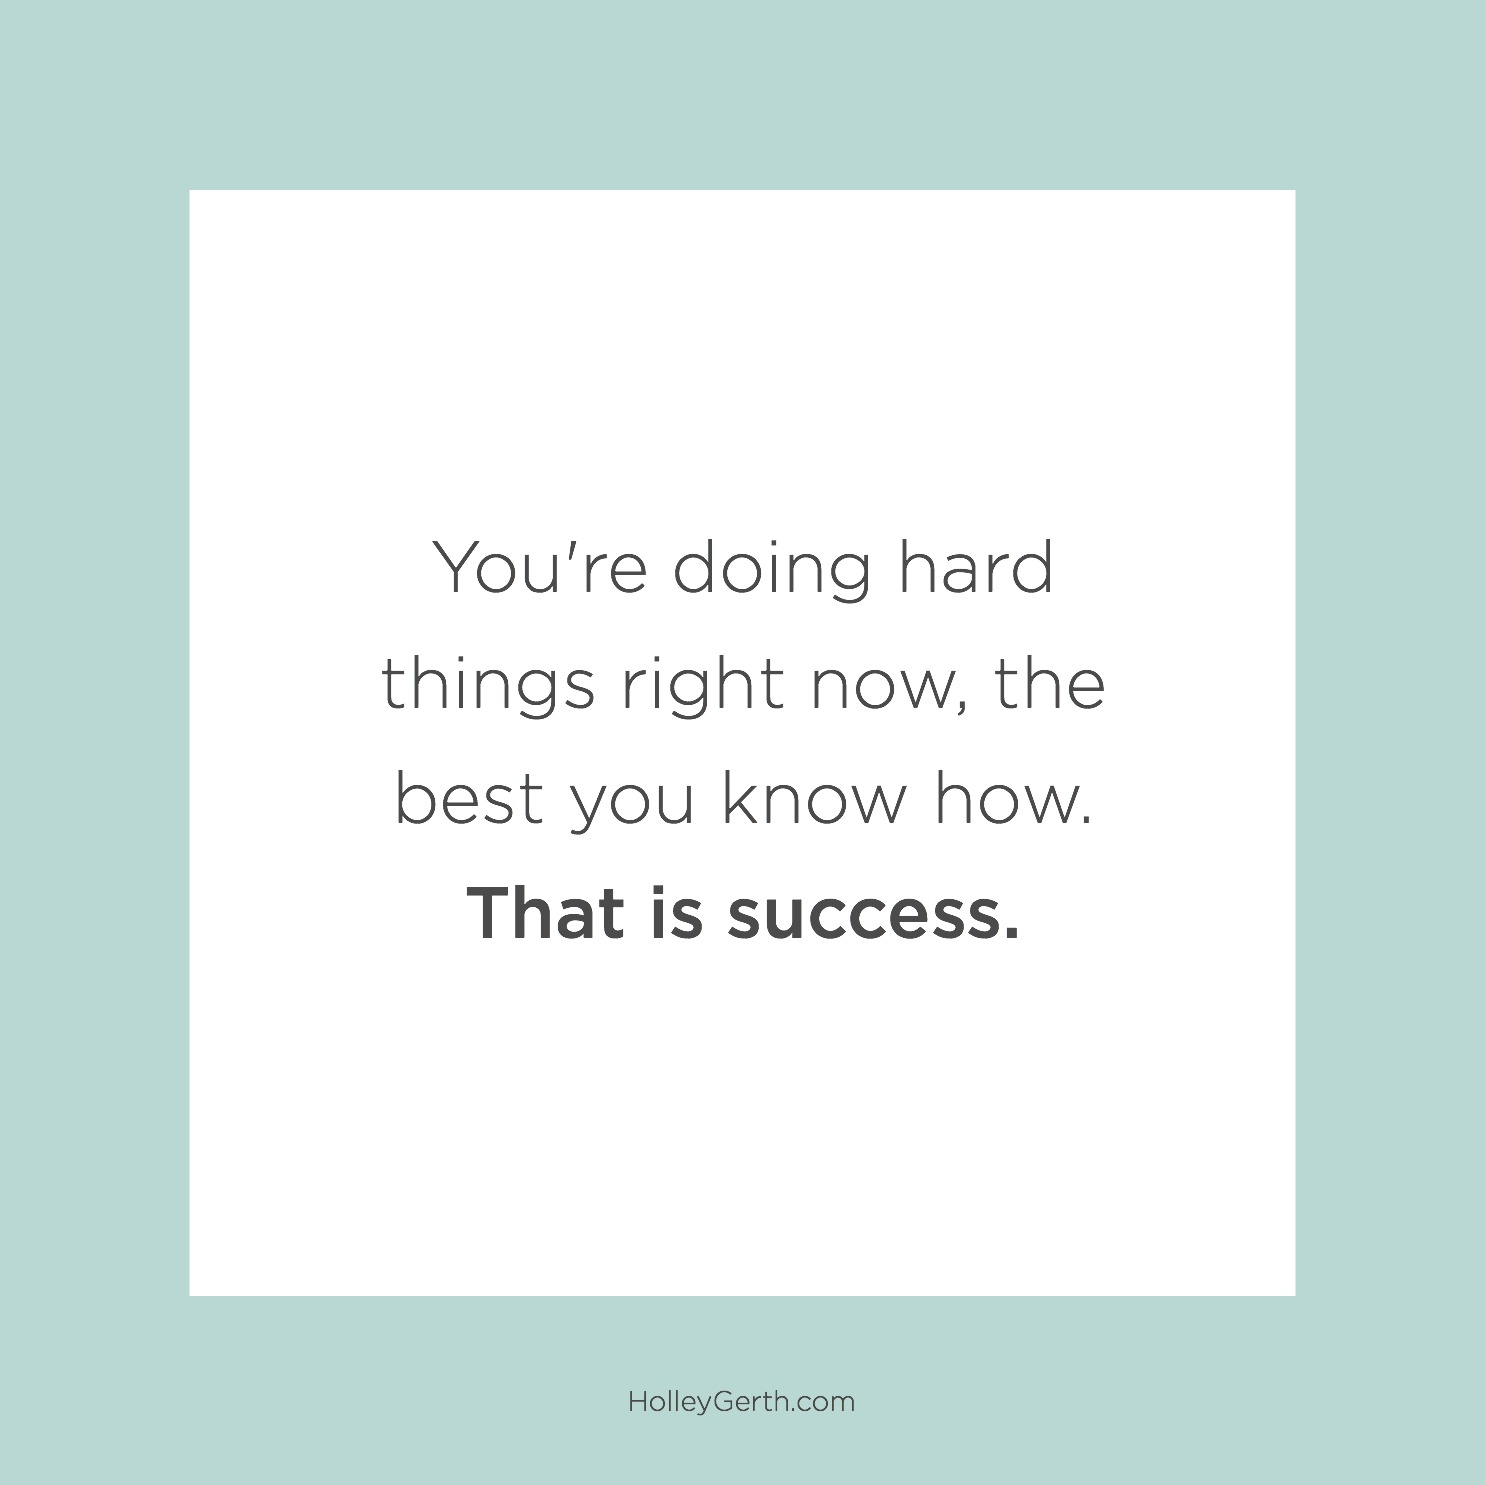 You're doing hard things right now, the best you know how. That is success.